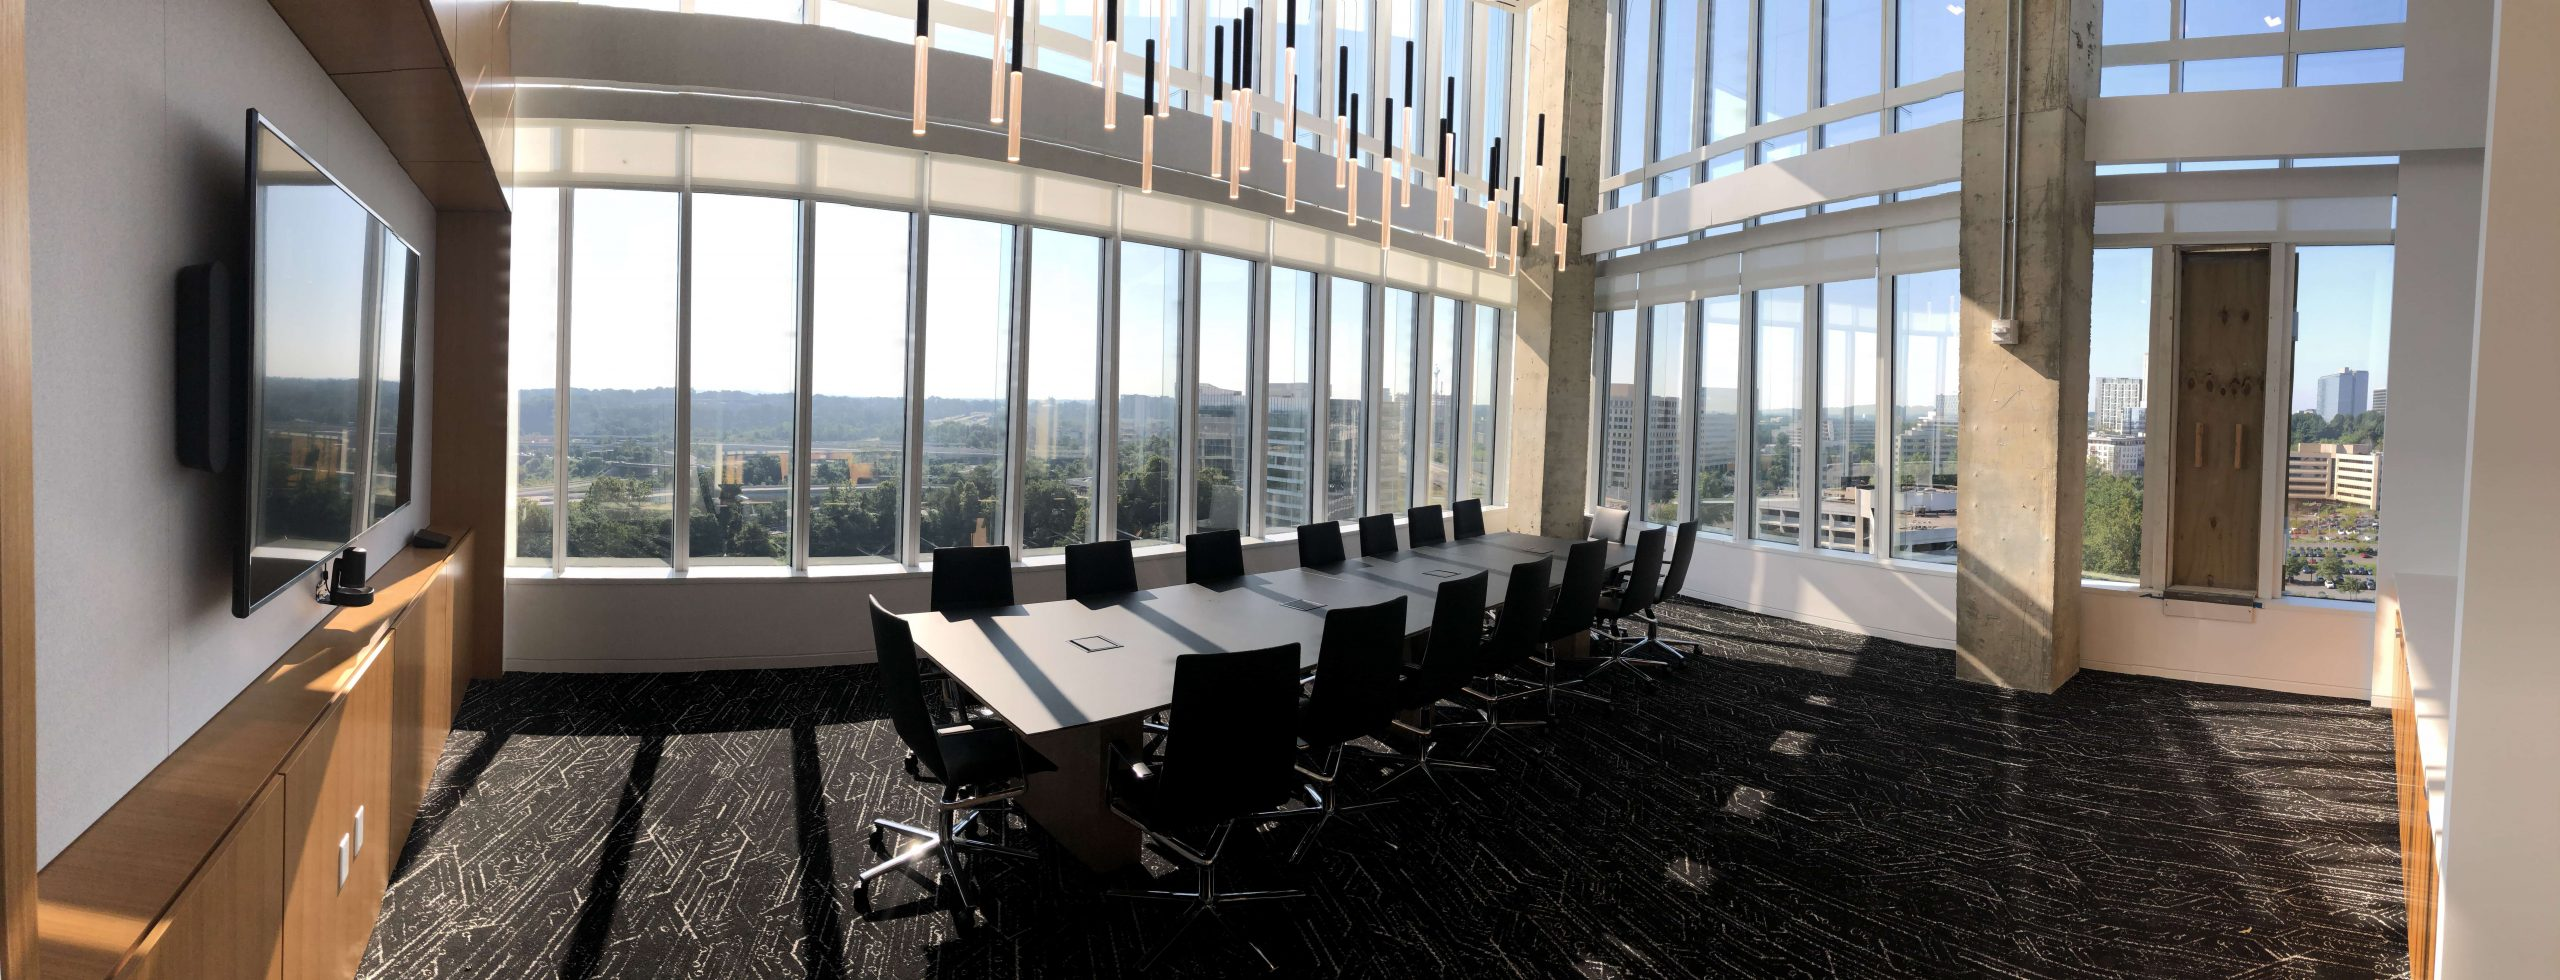 Appian Conference room with windows